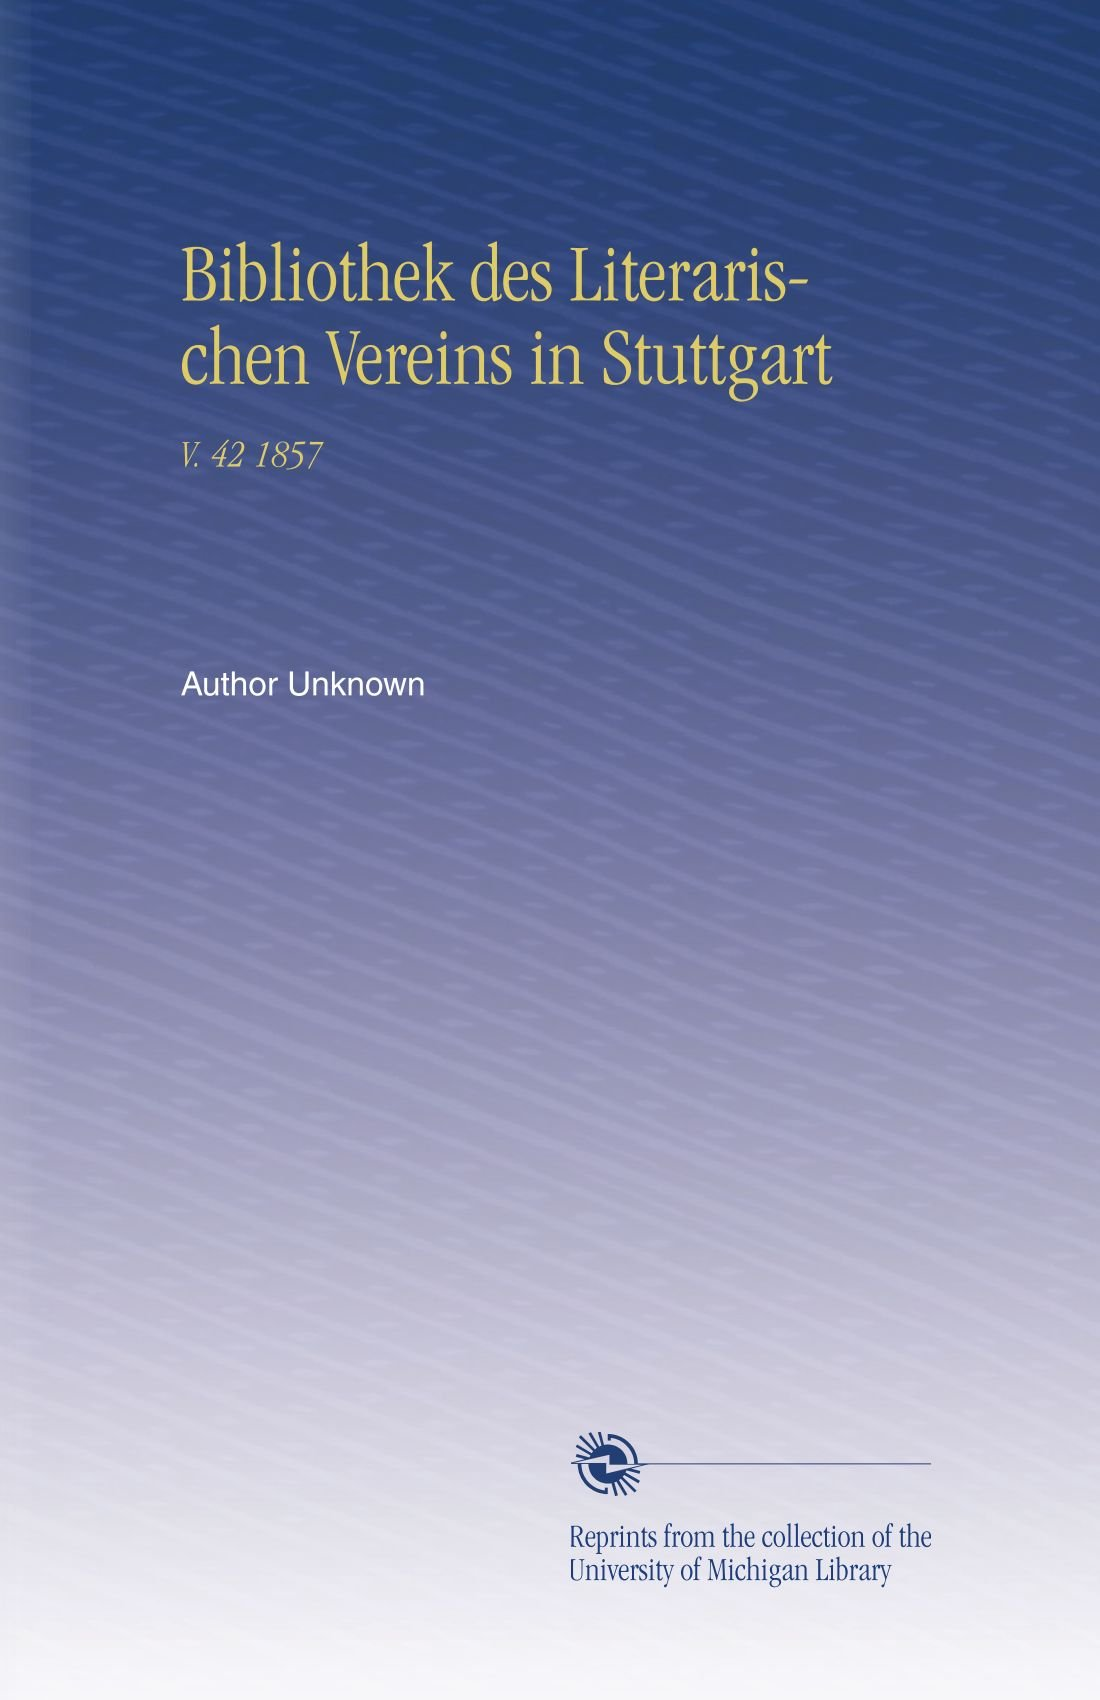 Download Bibliothek des Literarischen Vereins in Stuttgart: V. 42 1857 (German Edition) pdf epub